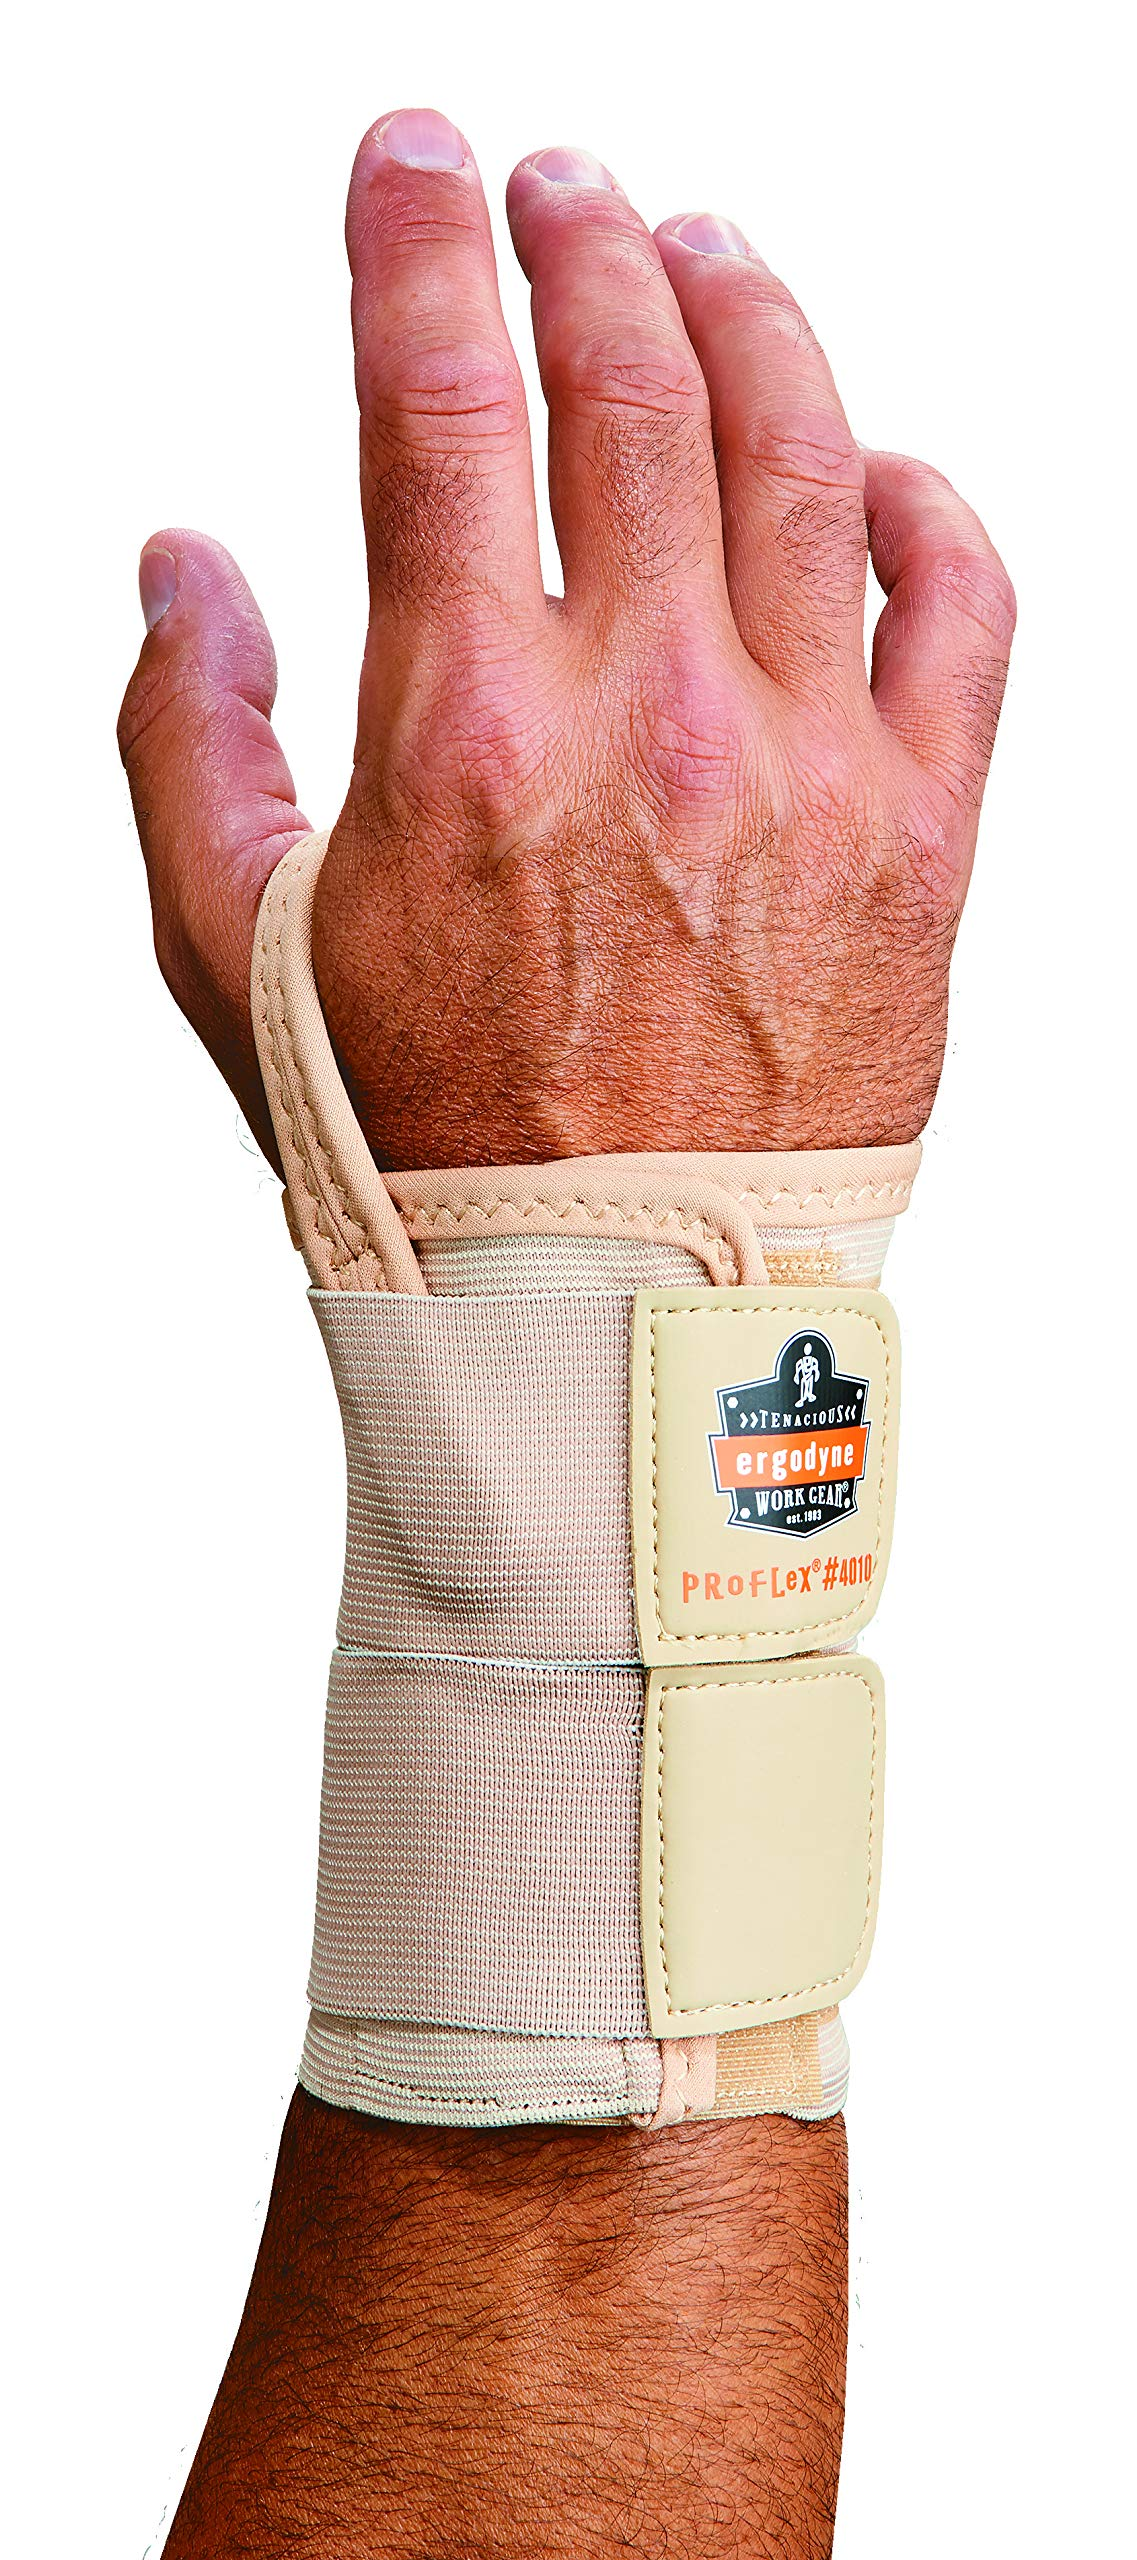 Ergodyne ProFlex 4010 Double-Strap Left Wrist Support, Tan, Large